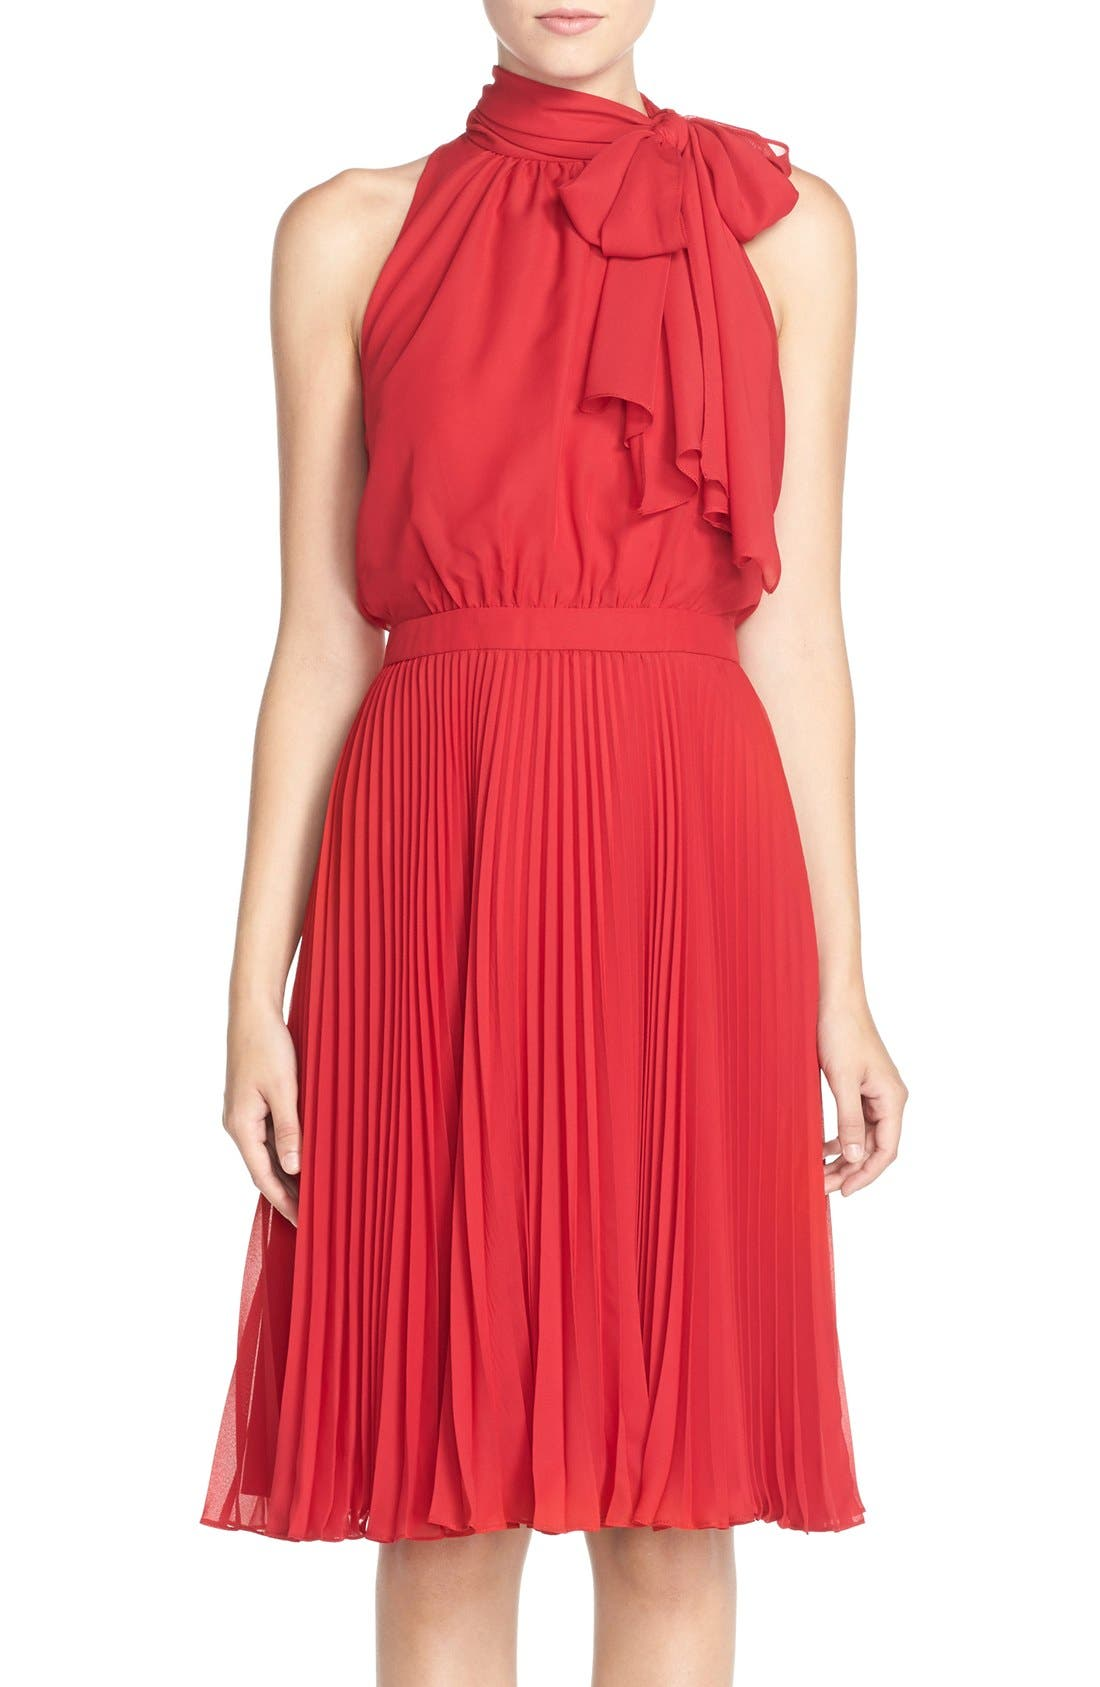 Alternate Image 1 Selected - Maggy London Tie Neck Pleat Chiffon Blouson Dress